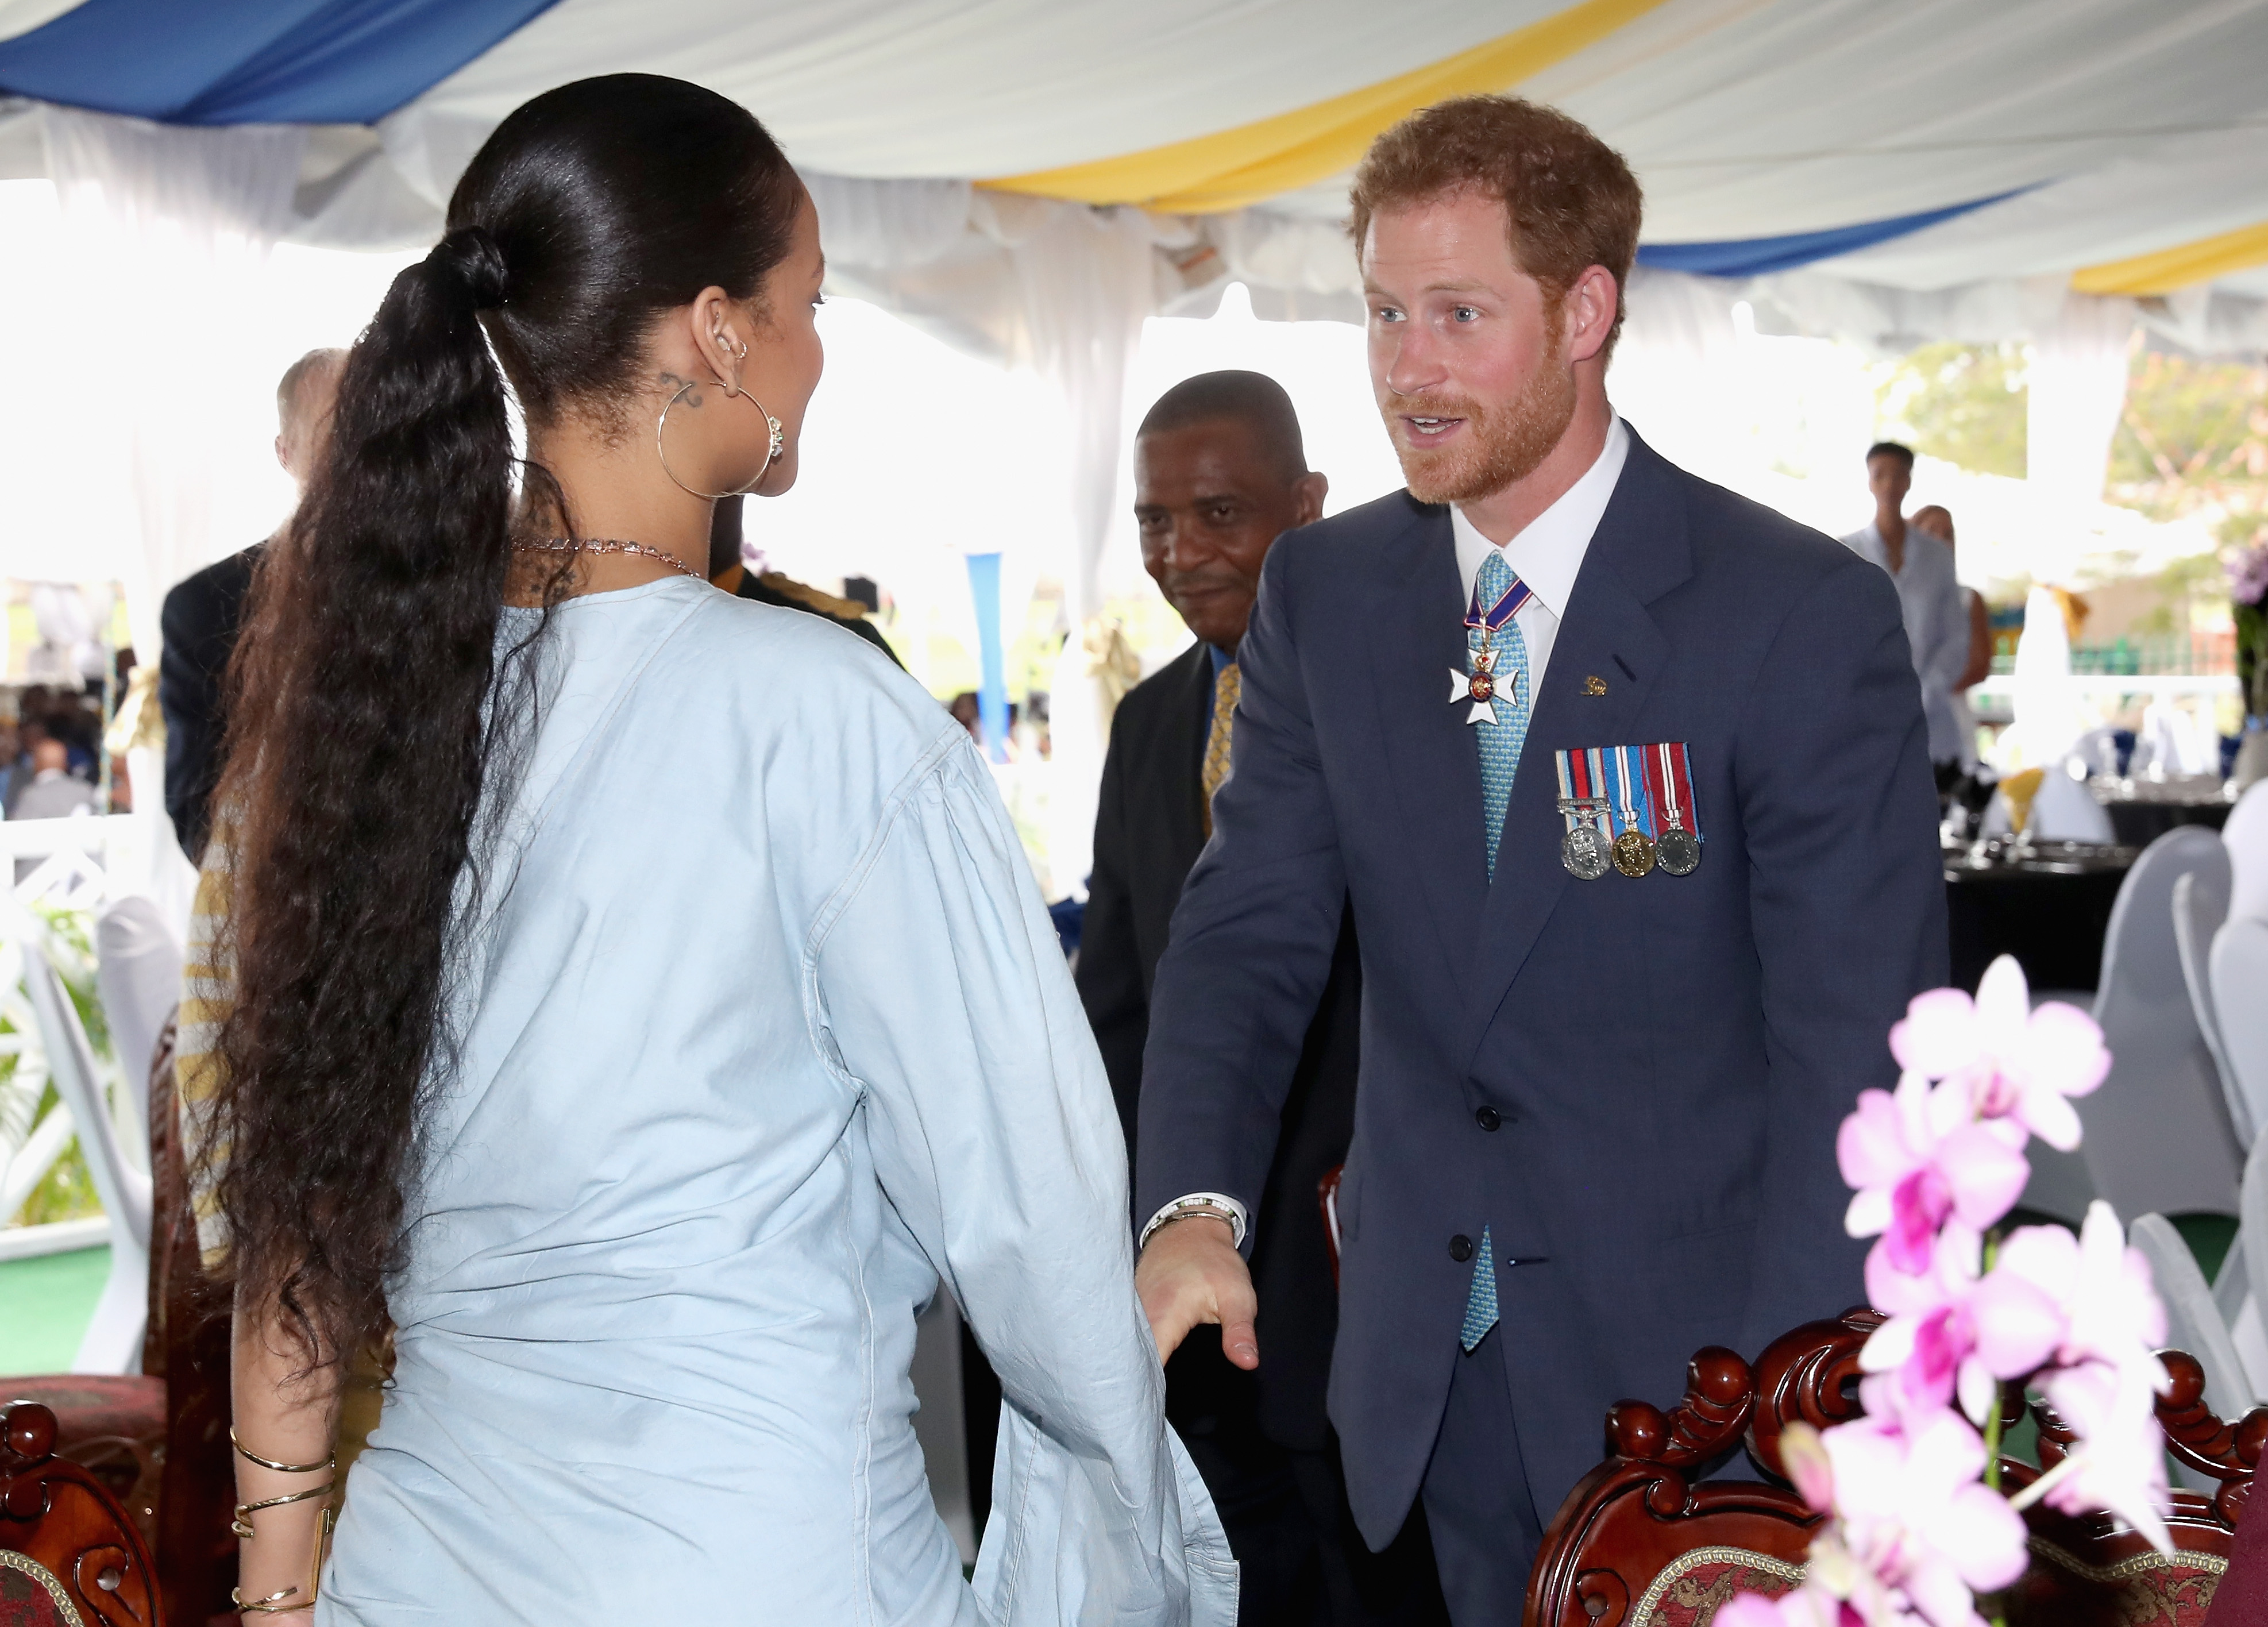 BRIDGETOWN, BARBADOS - NOVEMBER 30: Prince Harry meets Rihanna at a Toast to the Nation Event on day 10 of an official visit to the Caribbean on November 30, 2016 in Bridgetown, Barbados. Prince Harry's visit to The Caribbean marks the 35th Anniversary of Independence in Antigua and Barbuda and the 50th Anniversary of Independence in Barbados and Guyana. (Photo by Rihanna y el príncipe Harry)